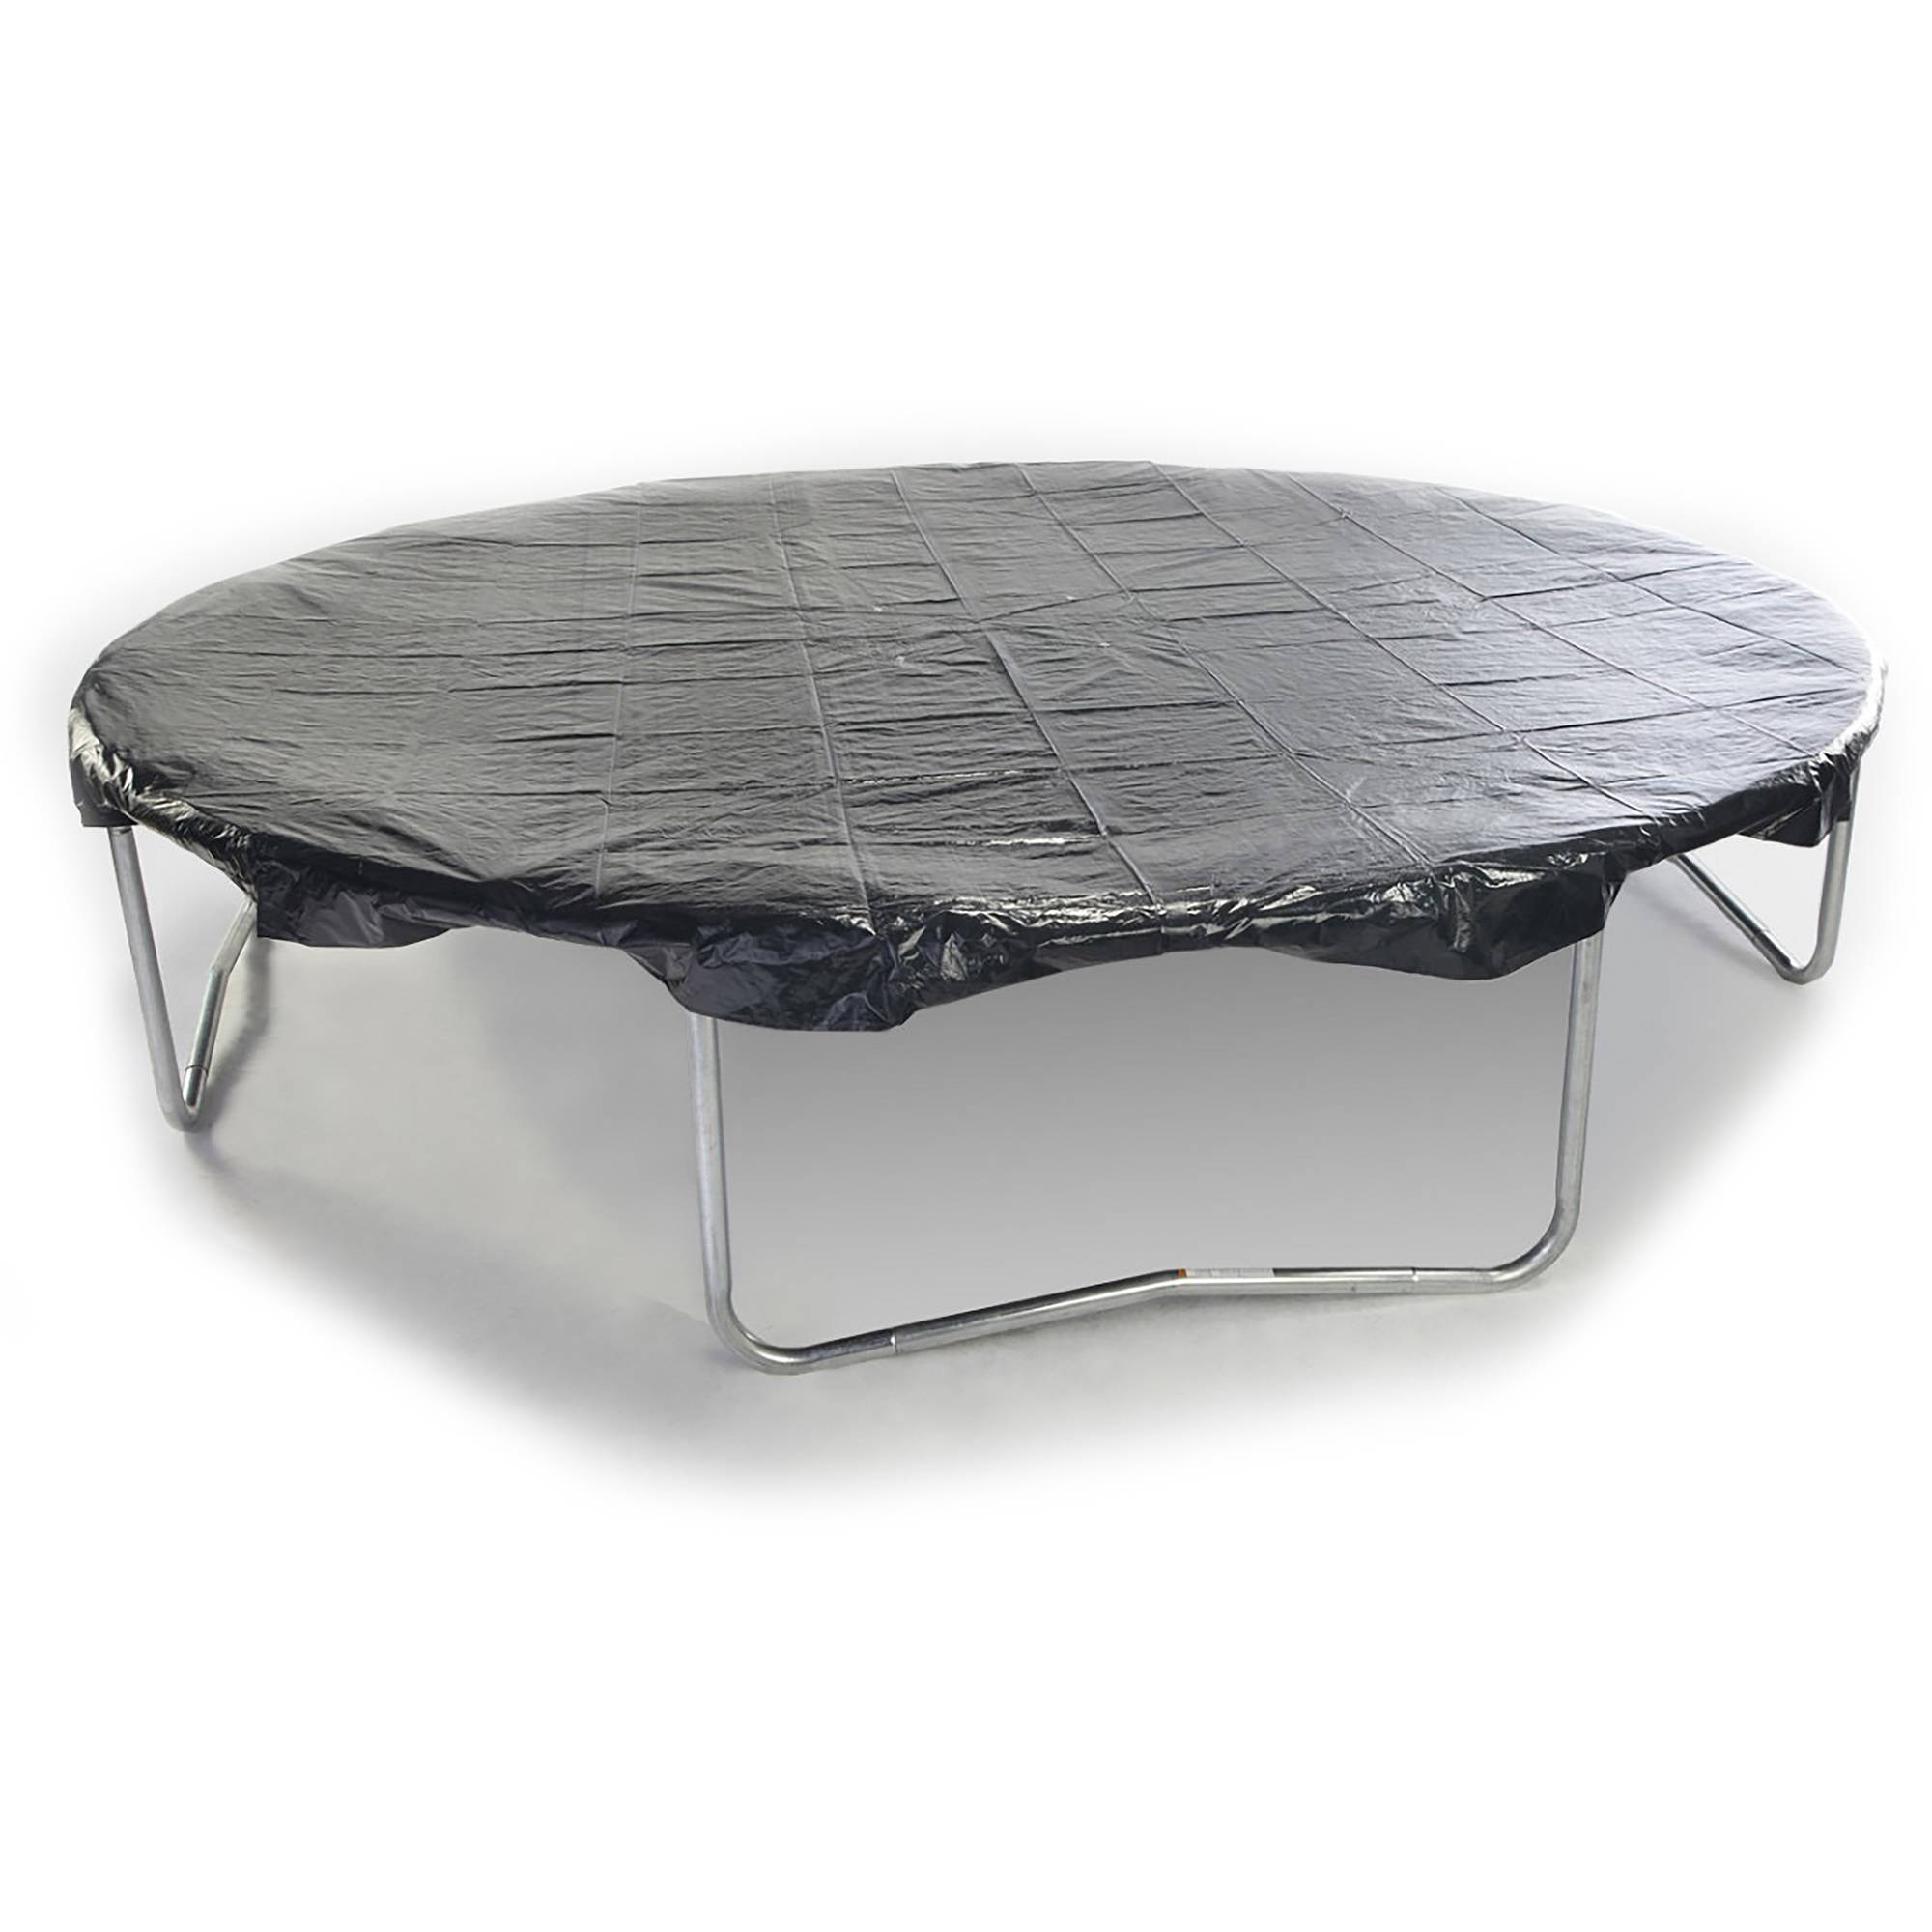 JumpKing 12 ft. Black Trampoline Protective Weather Cover – Accessory for Round Trampolines Fits 12 ft.